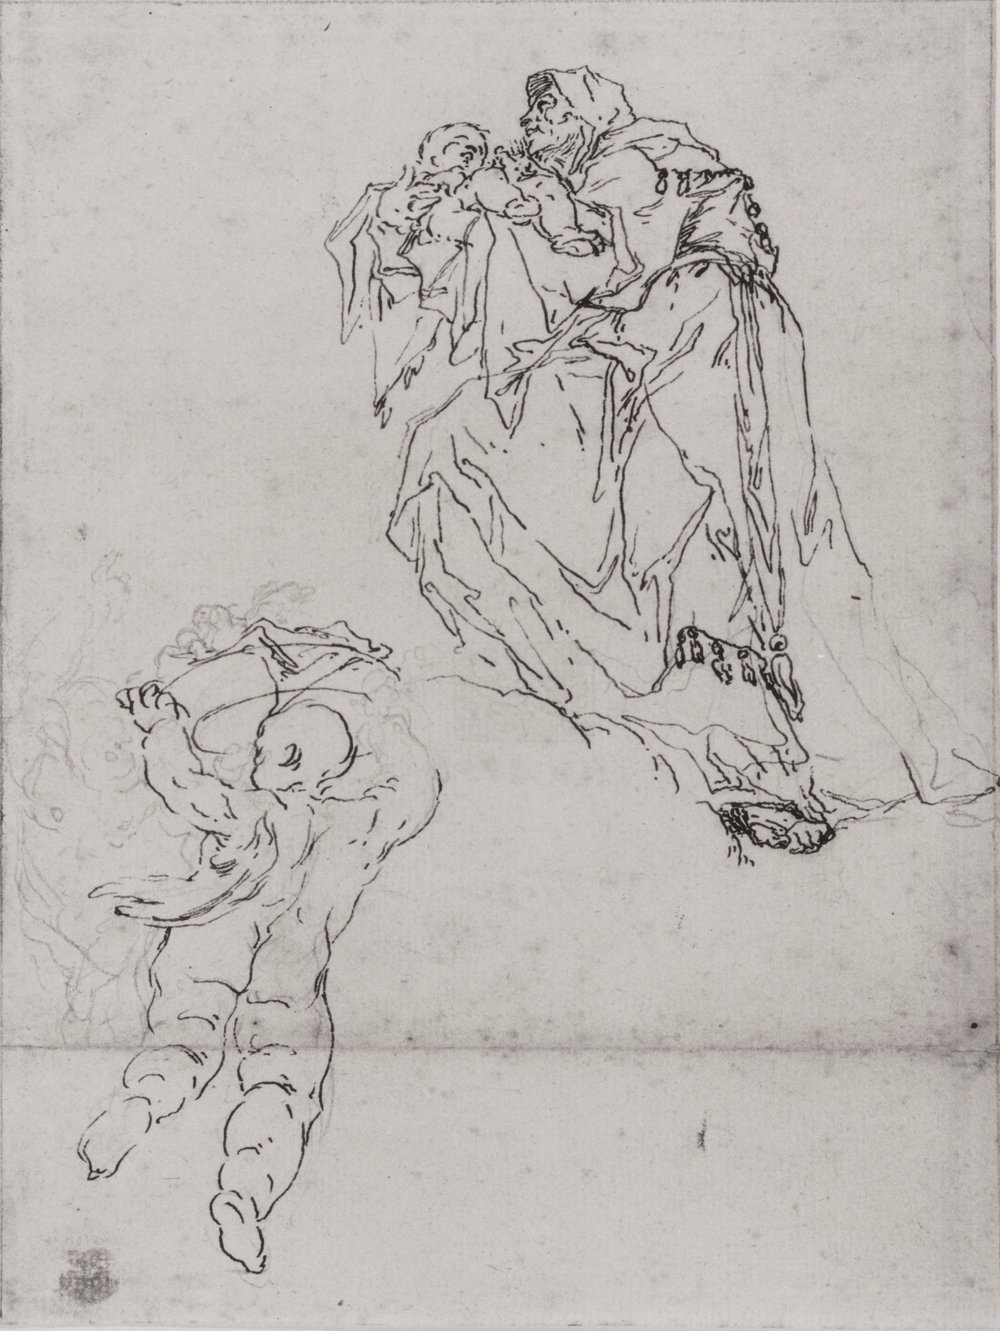 Fig. 3. Paul Troger,  The Prophetess Anna with the Christ Child and Two Putti , pen and ink over pencil, 8.5 x 6.5 inches, Germanisches National Museum, Nuremberg